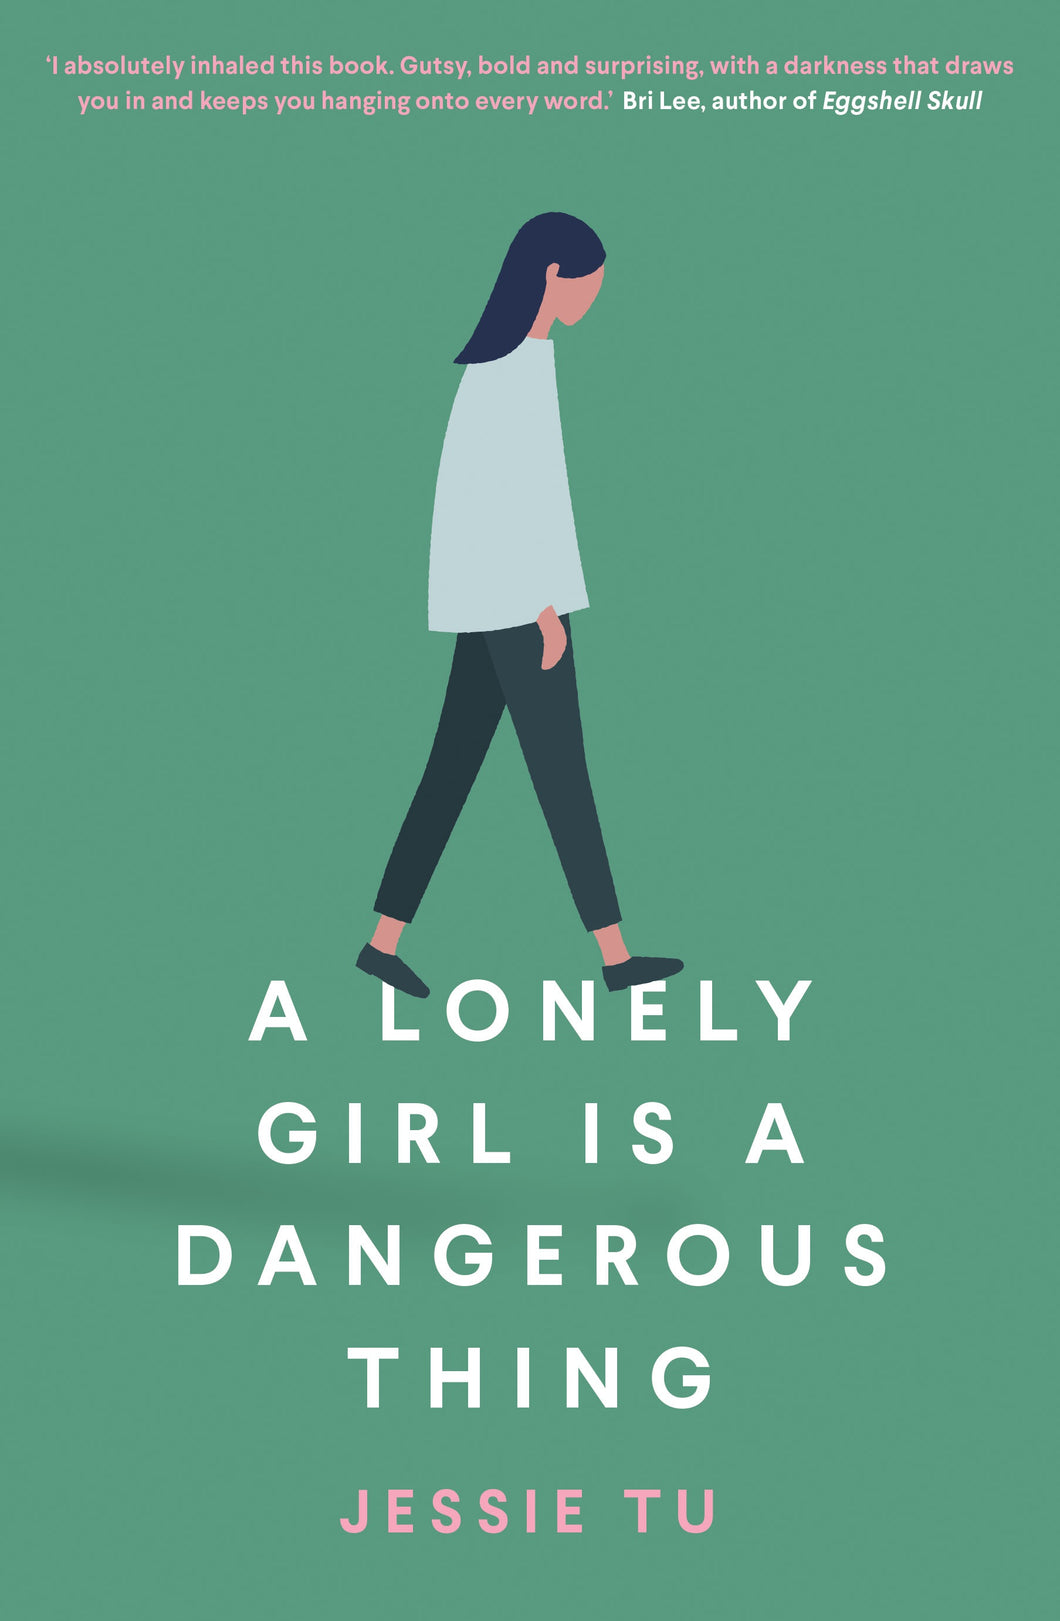 A Lonely Girl is a Dangerous Thing